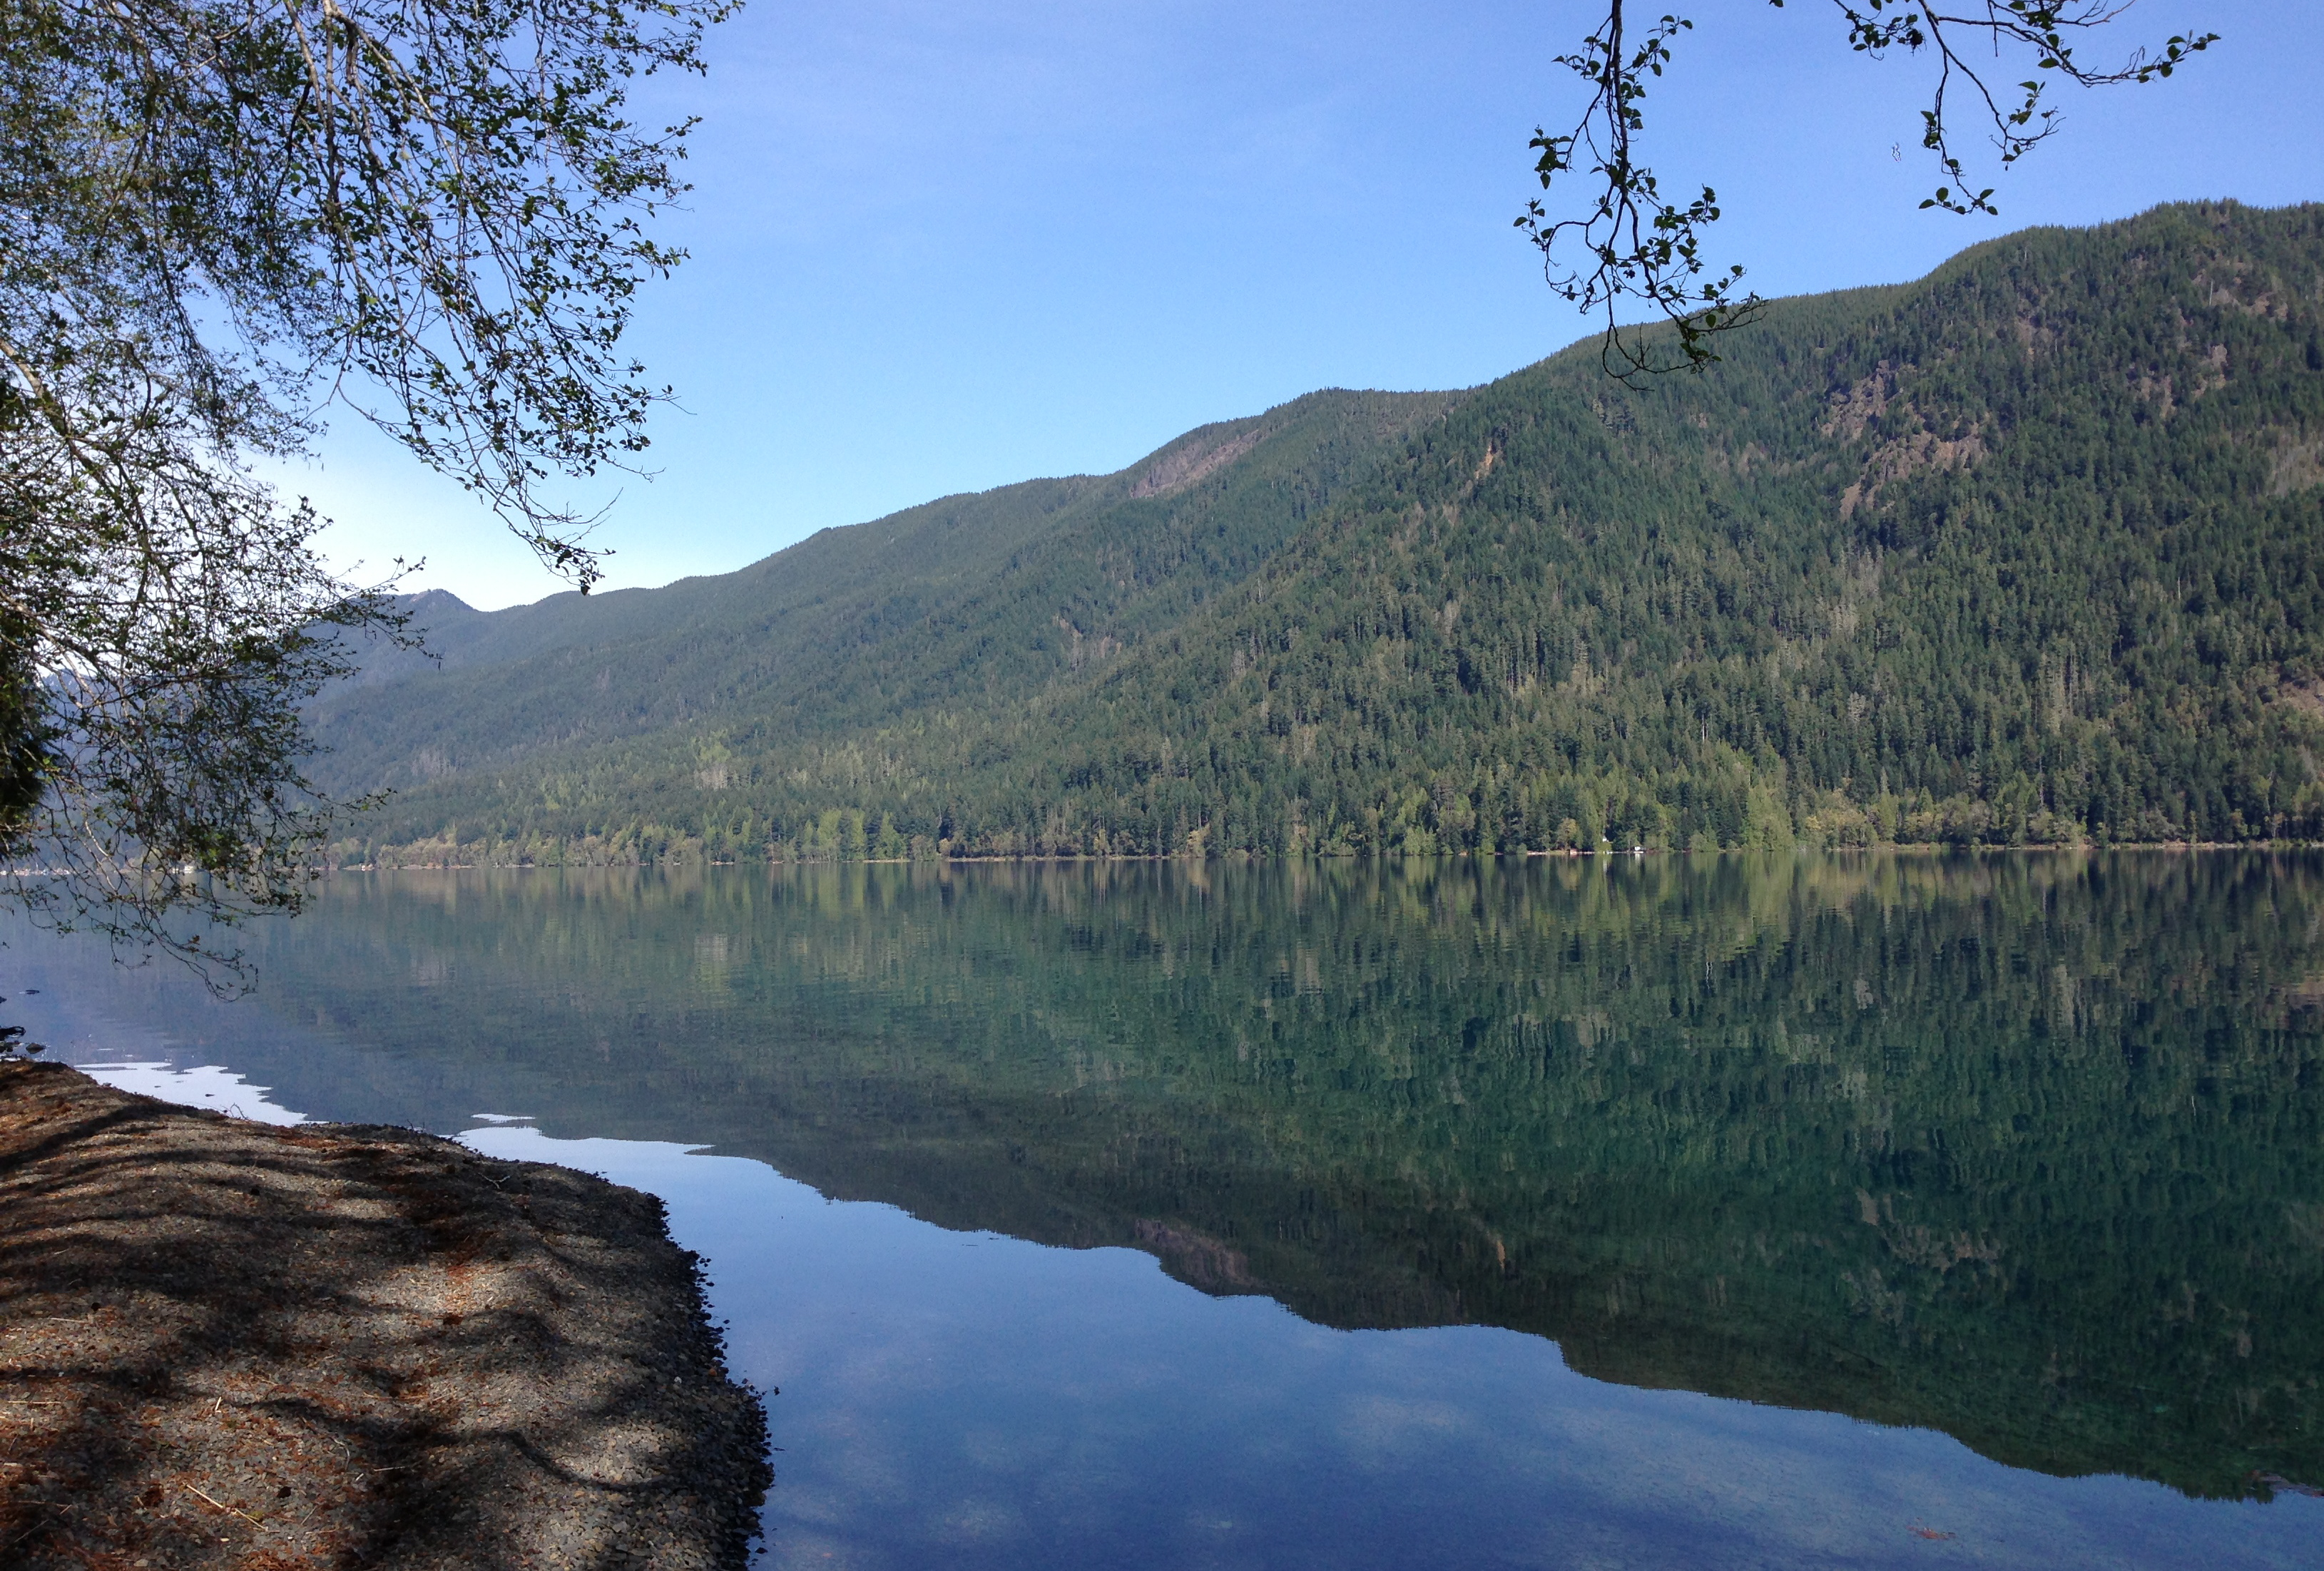 A calm day on Lake Crescent